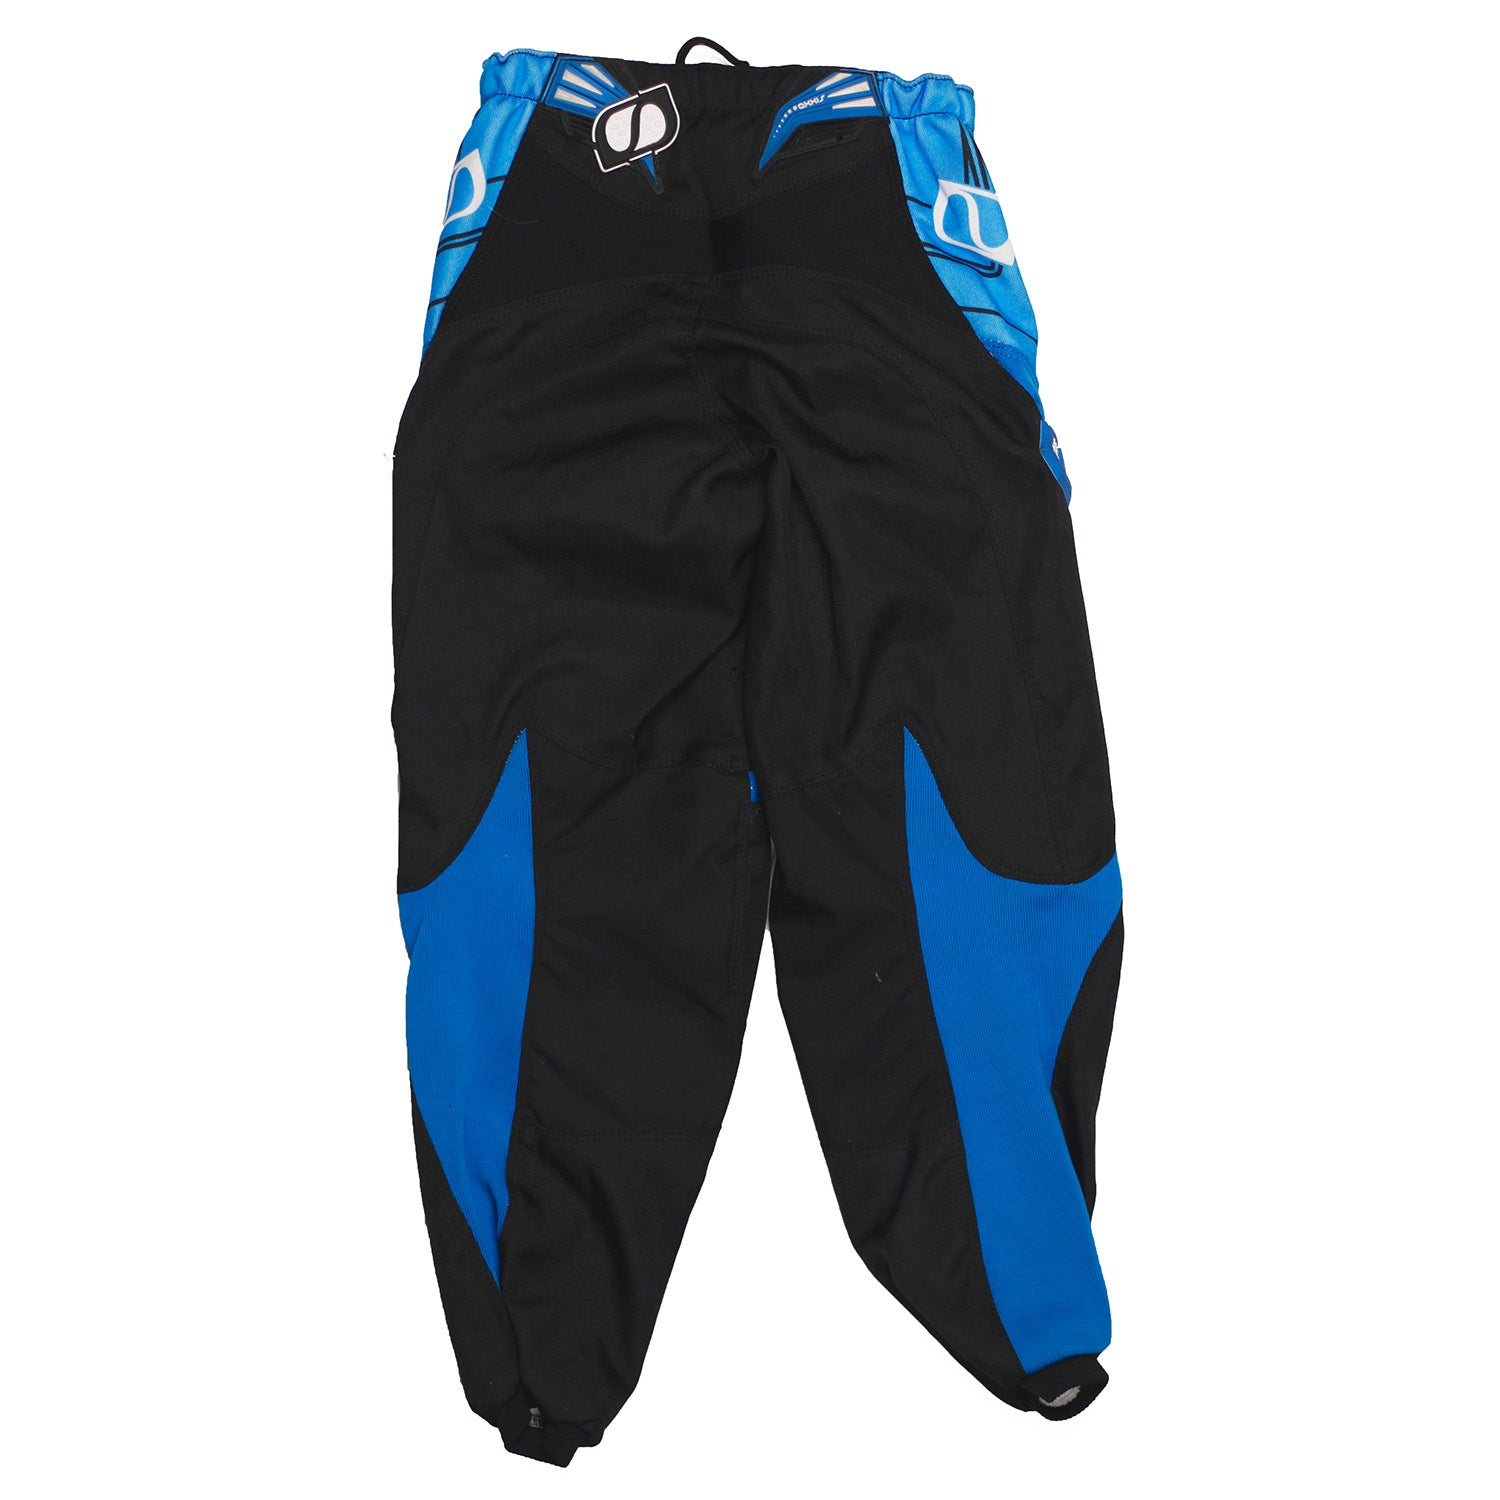 MSR Axxis Motocross pants size 26youth